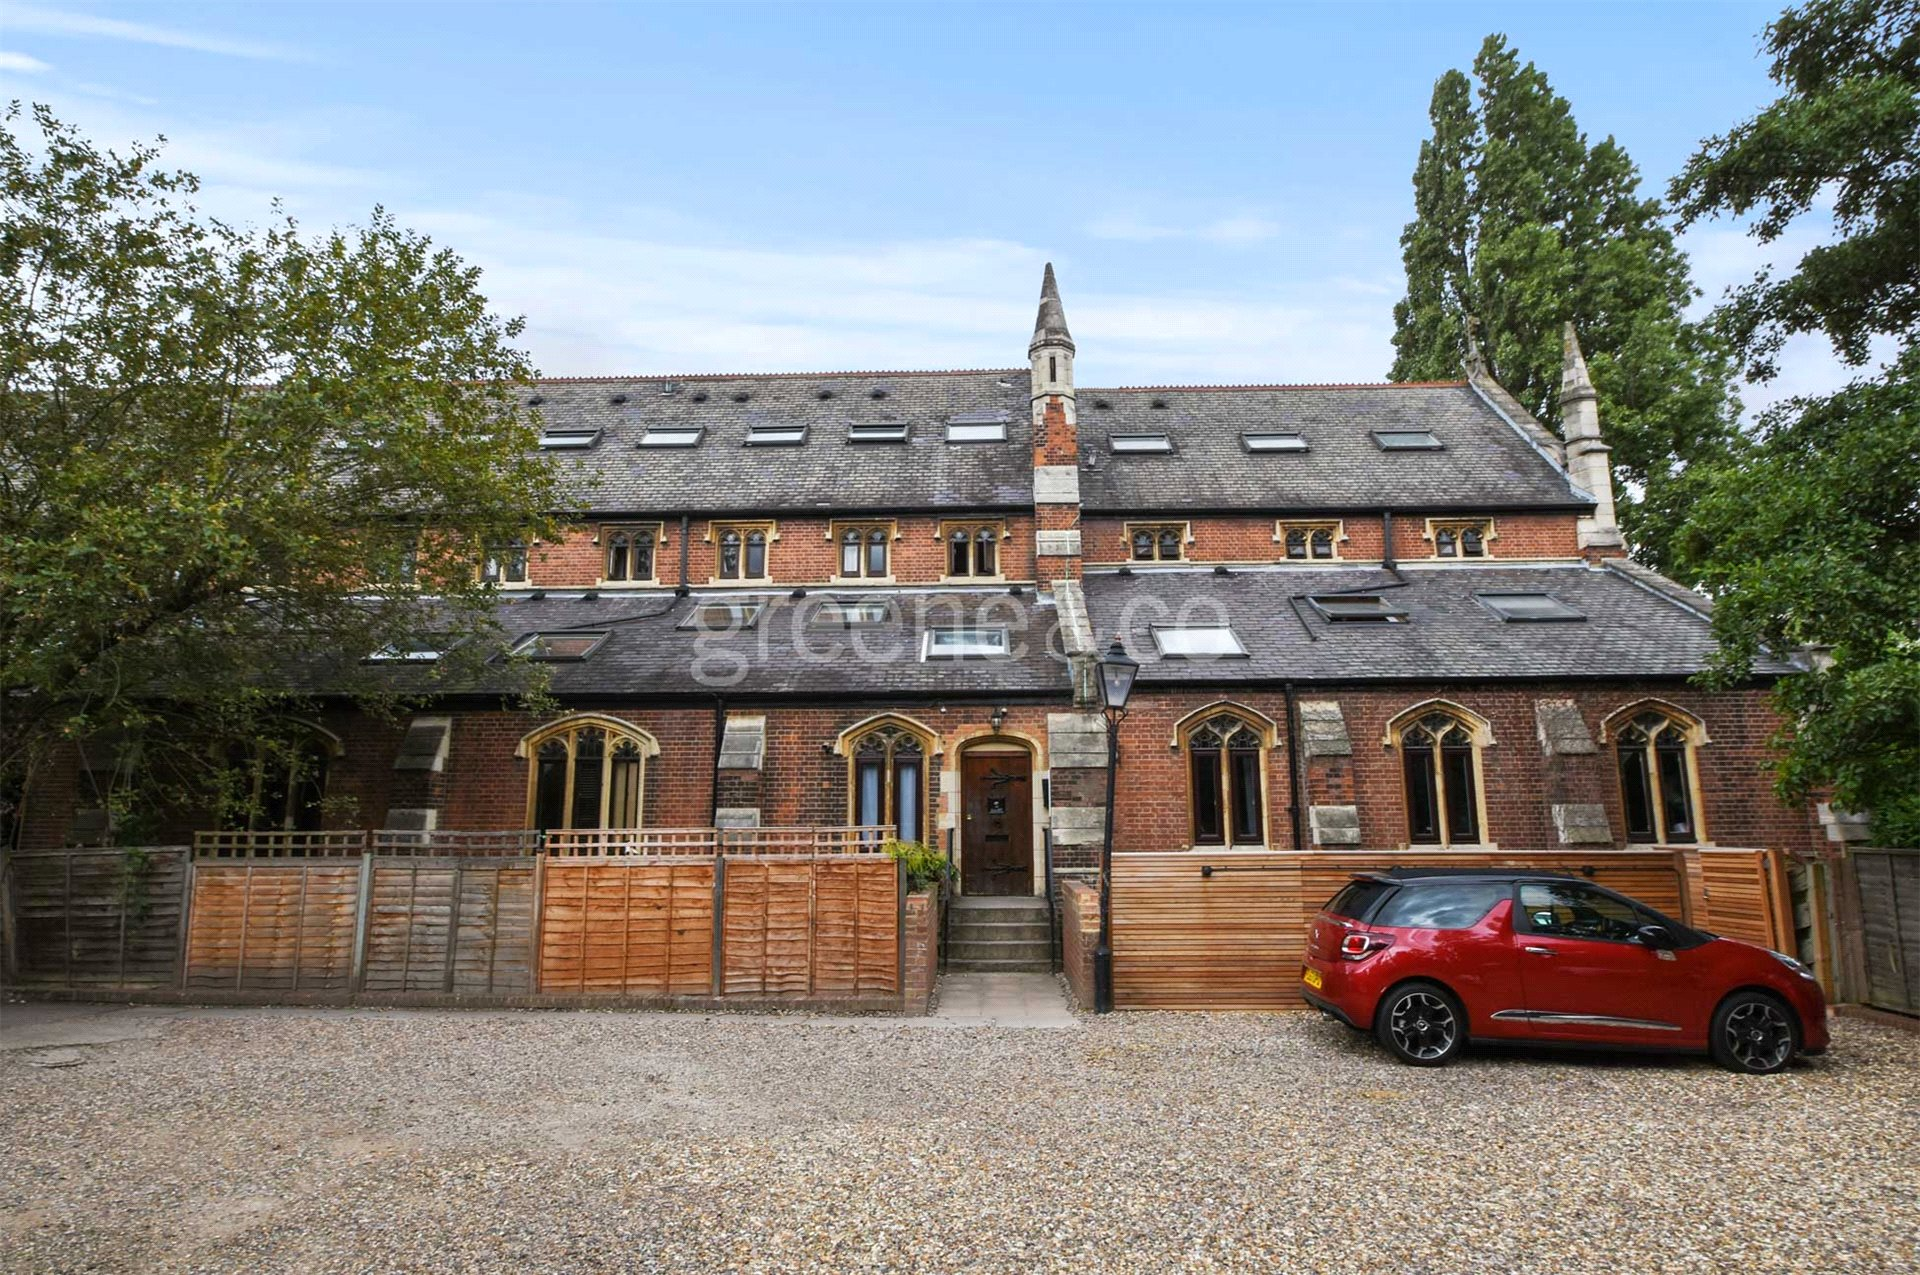 3 Bedrooms Flat for sale in Mayfield Road, Crouch End, London, N8